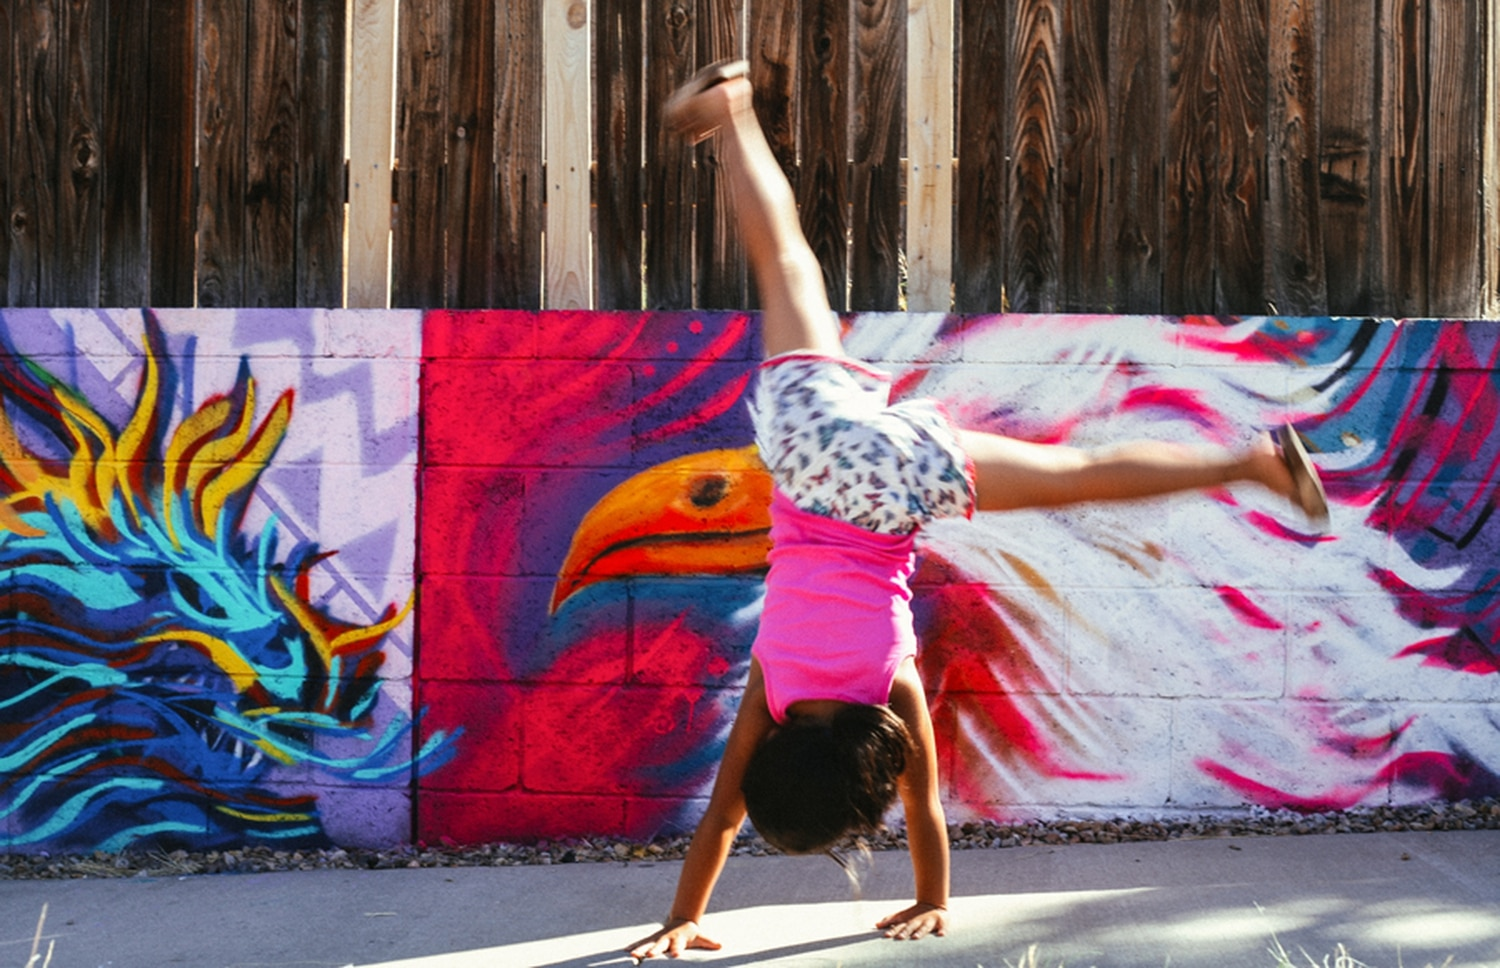 The daughter of Christina Castro of the Three Sisters Collective goes between cartwheeling and helping her mom with their portion of the mural.